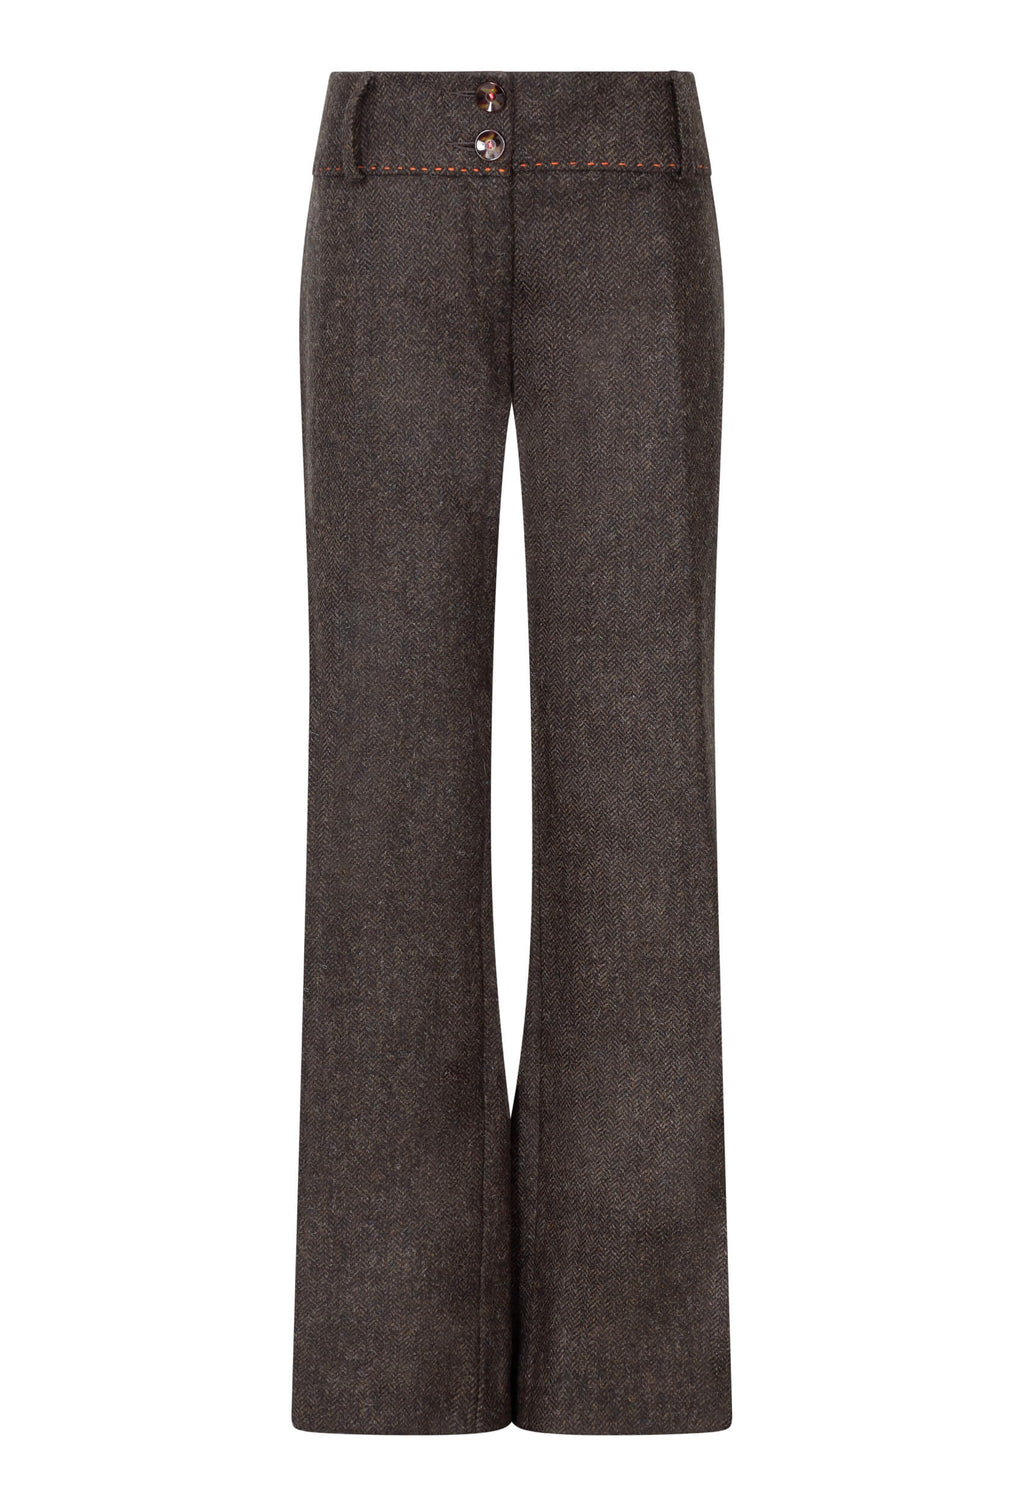 chocolate-brown-herringbone-tweed-trousers-womens